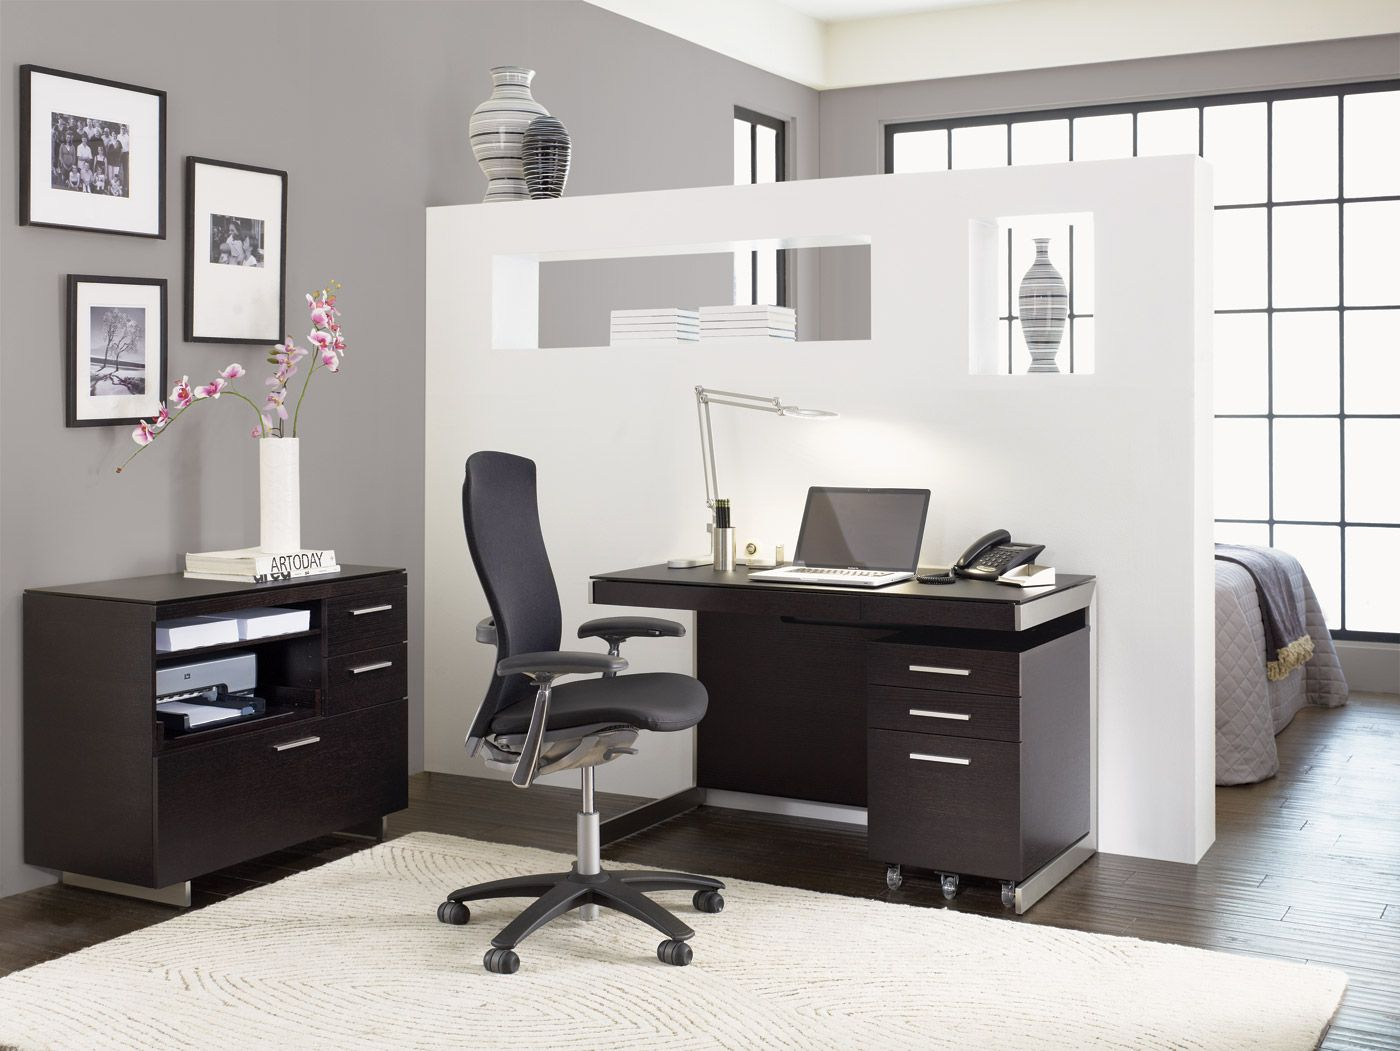 Sequel Office And Desk By Bdi Home Office Design Furniture